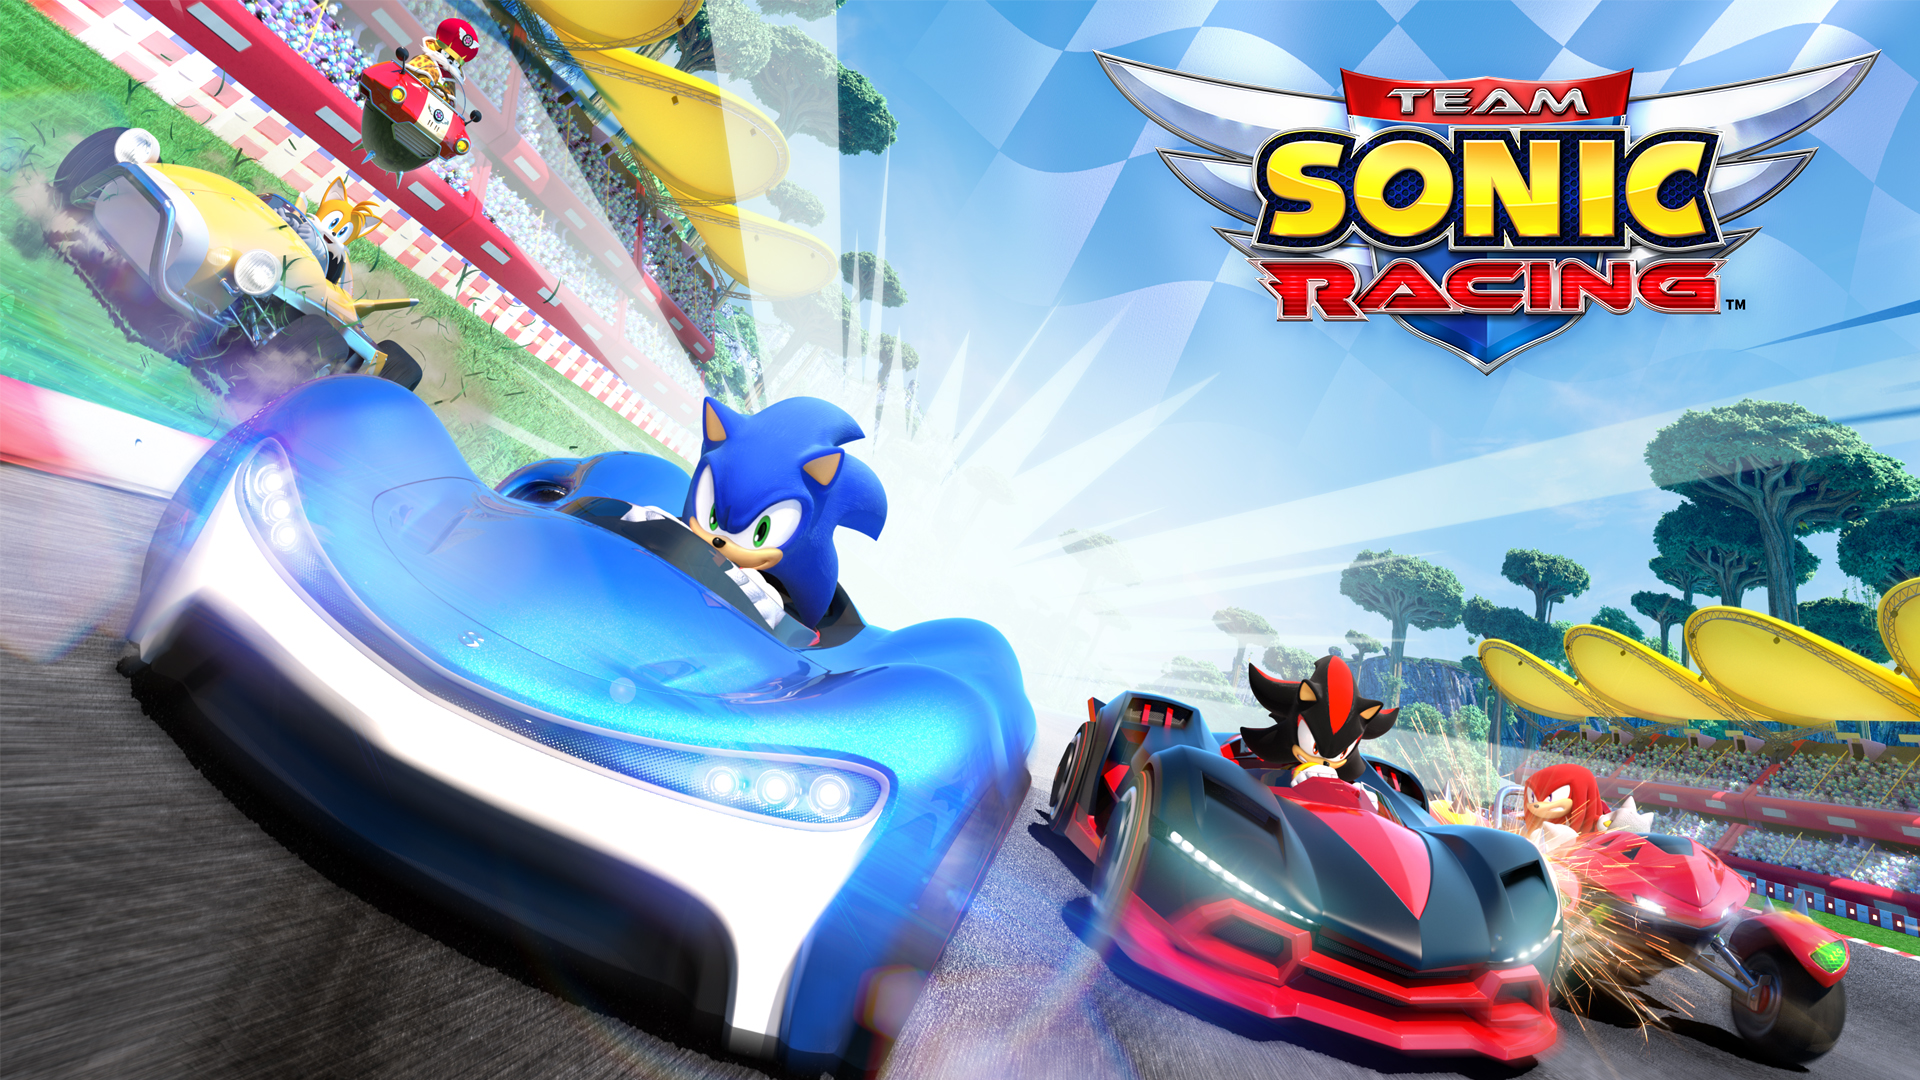 Team Sonic Racing On Steam